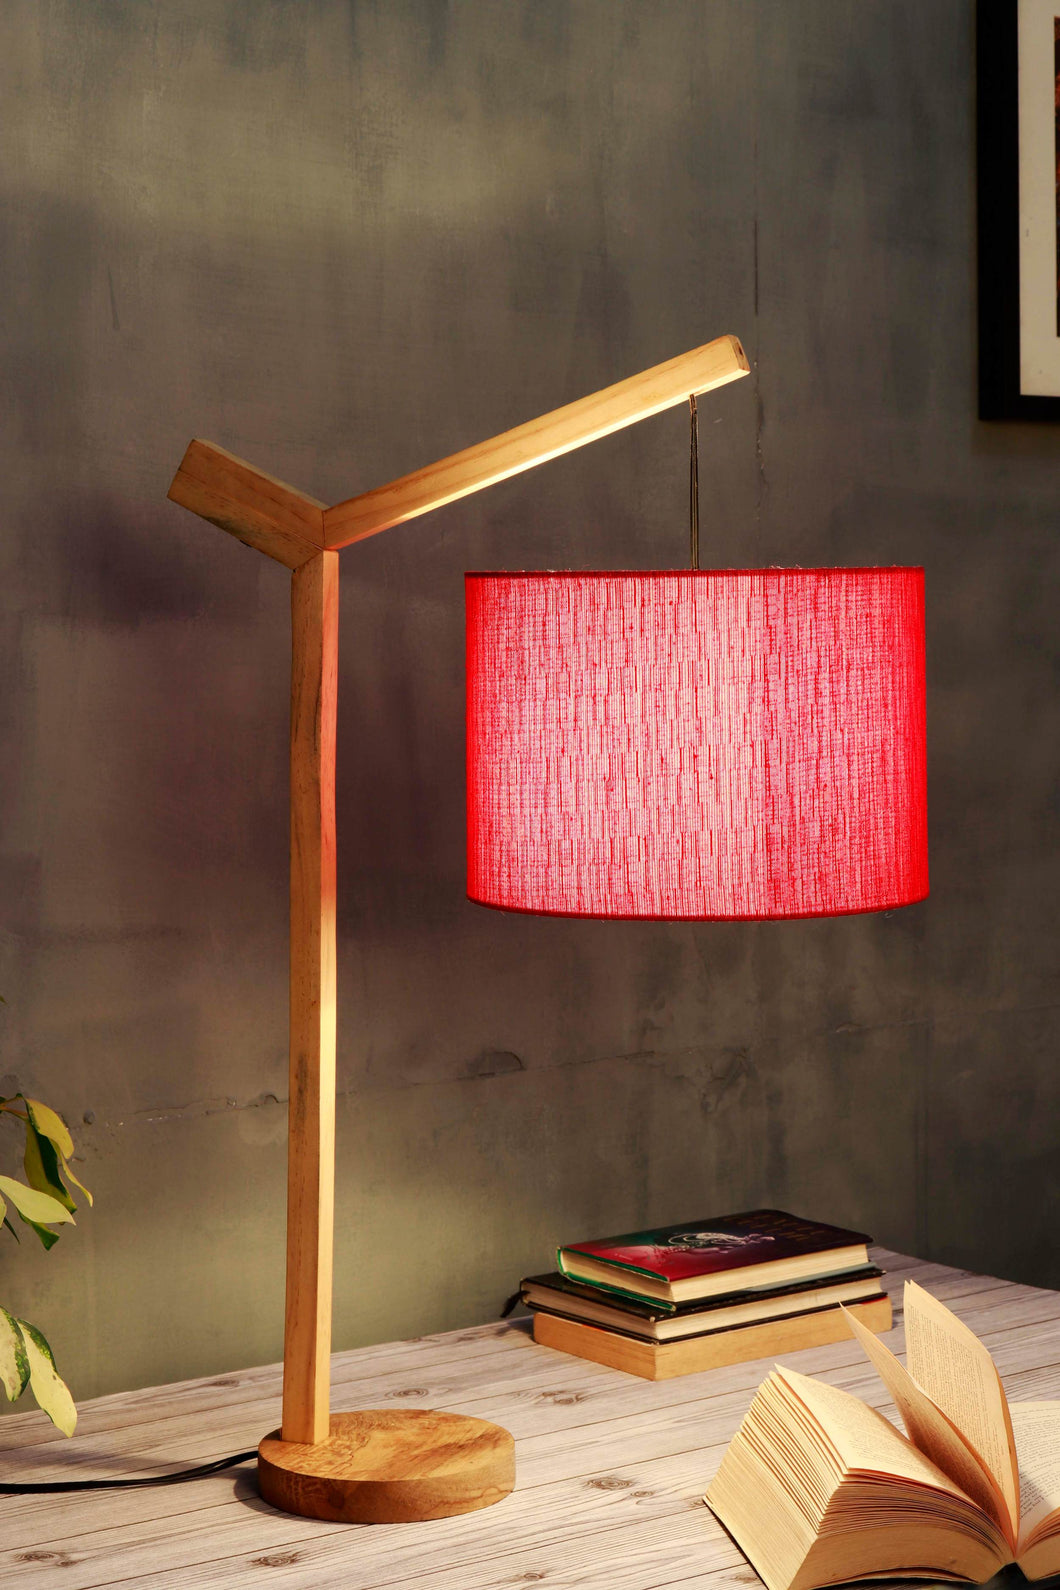 Small Ozzy Table Lamp with Round Red Lampshade